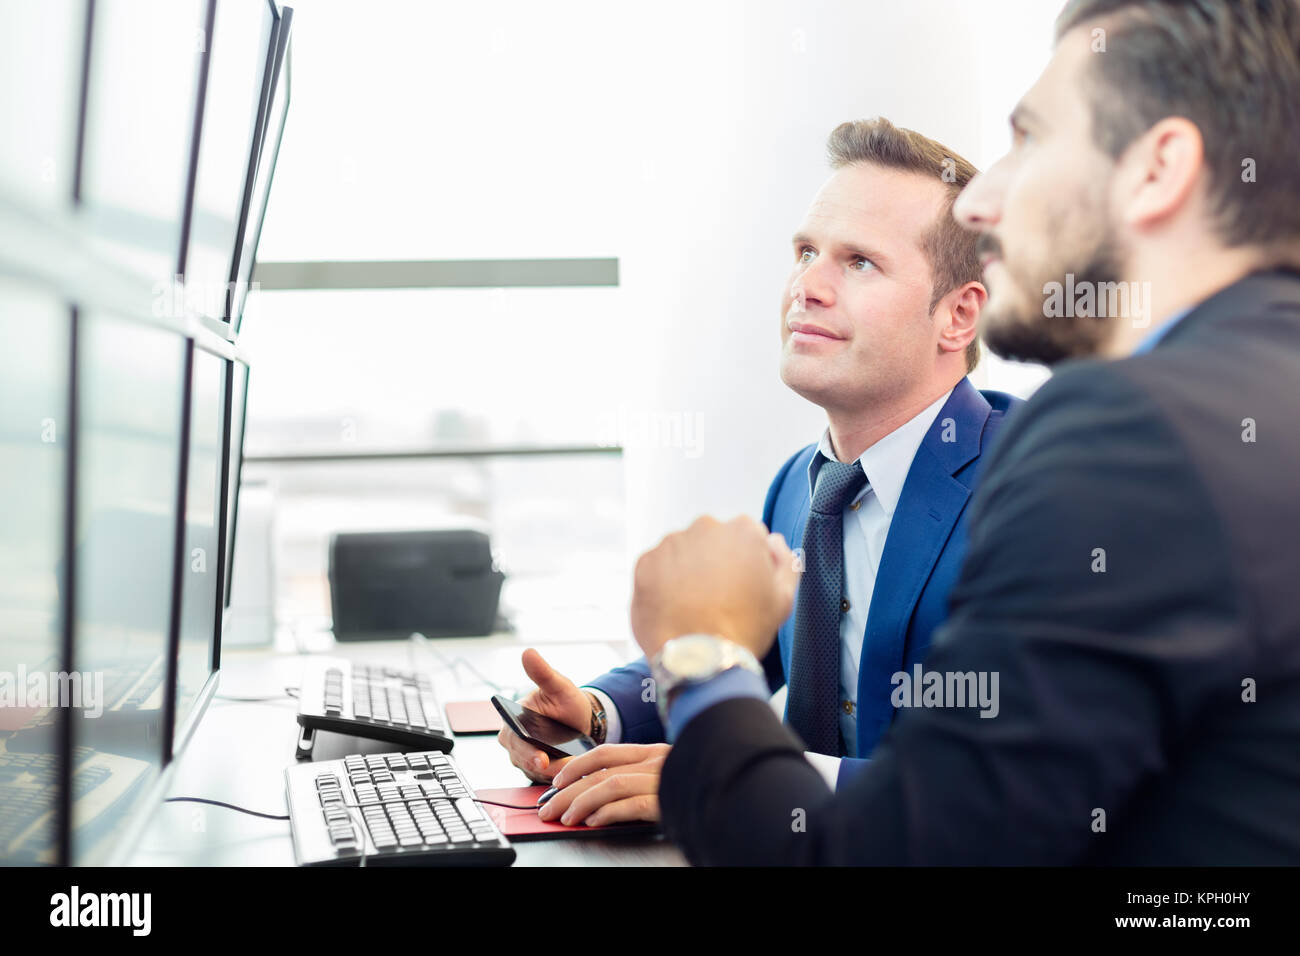 Successful businessmen in office. Business success. - Stock Image